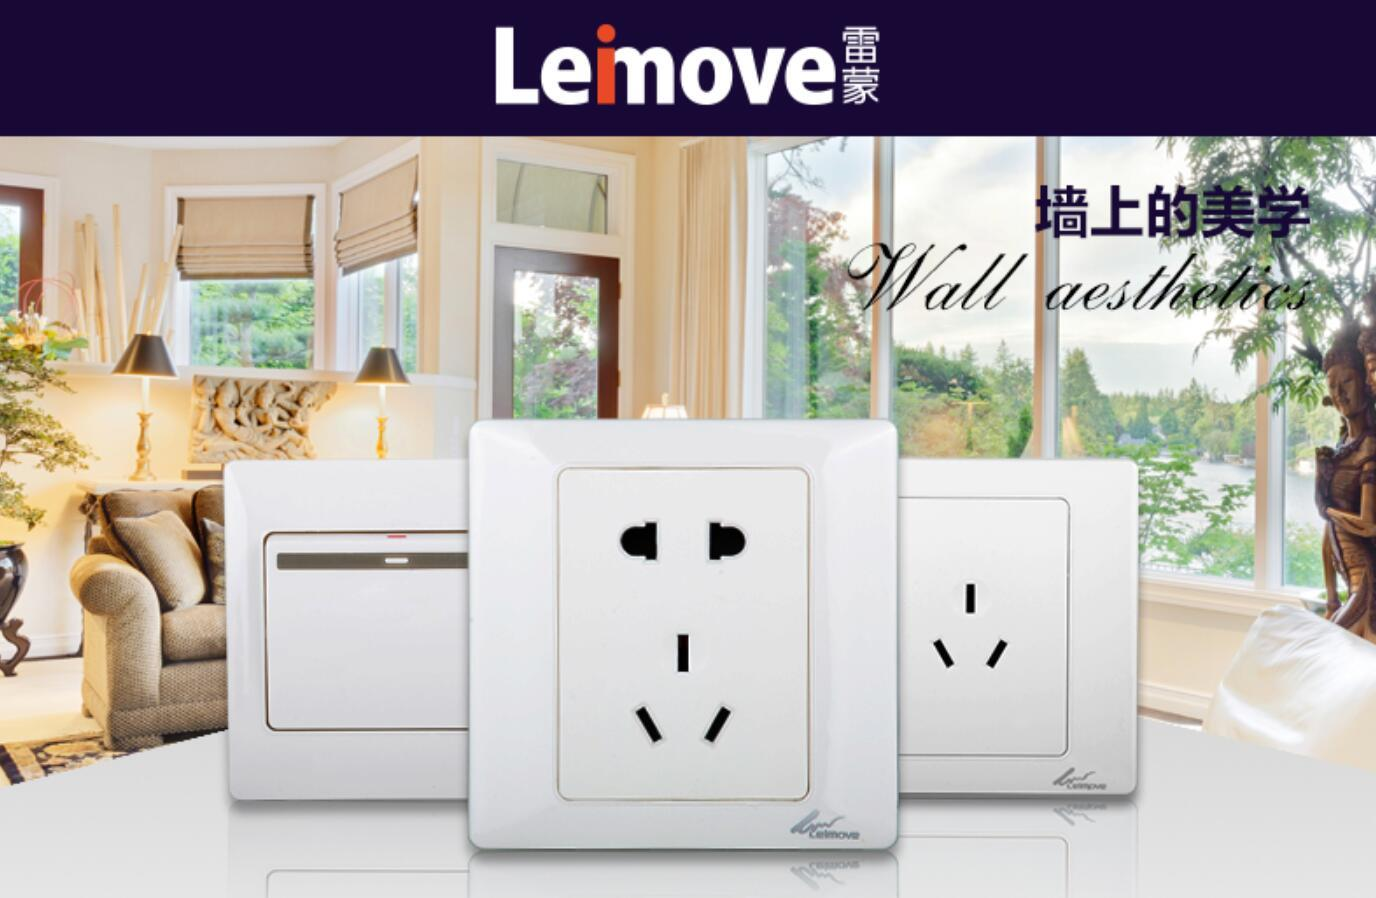 Leimove-High-quality Socket Outlet | Level 3 Multi-function Socket